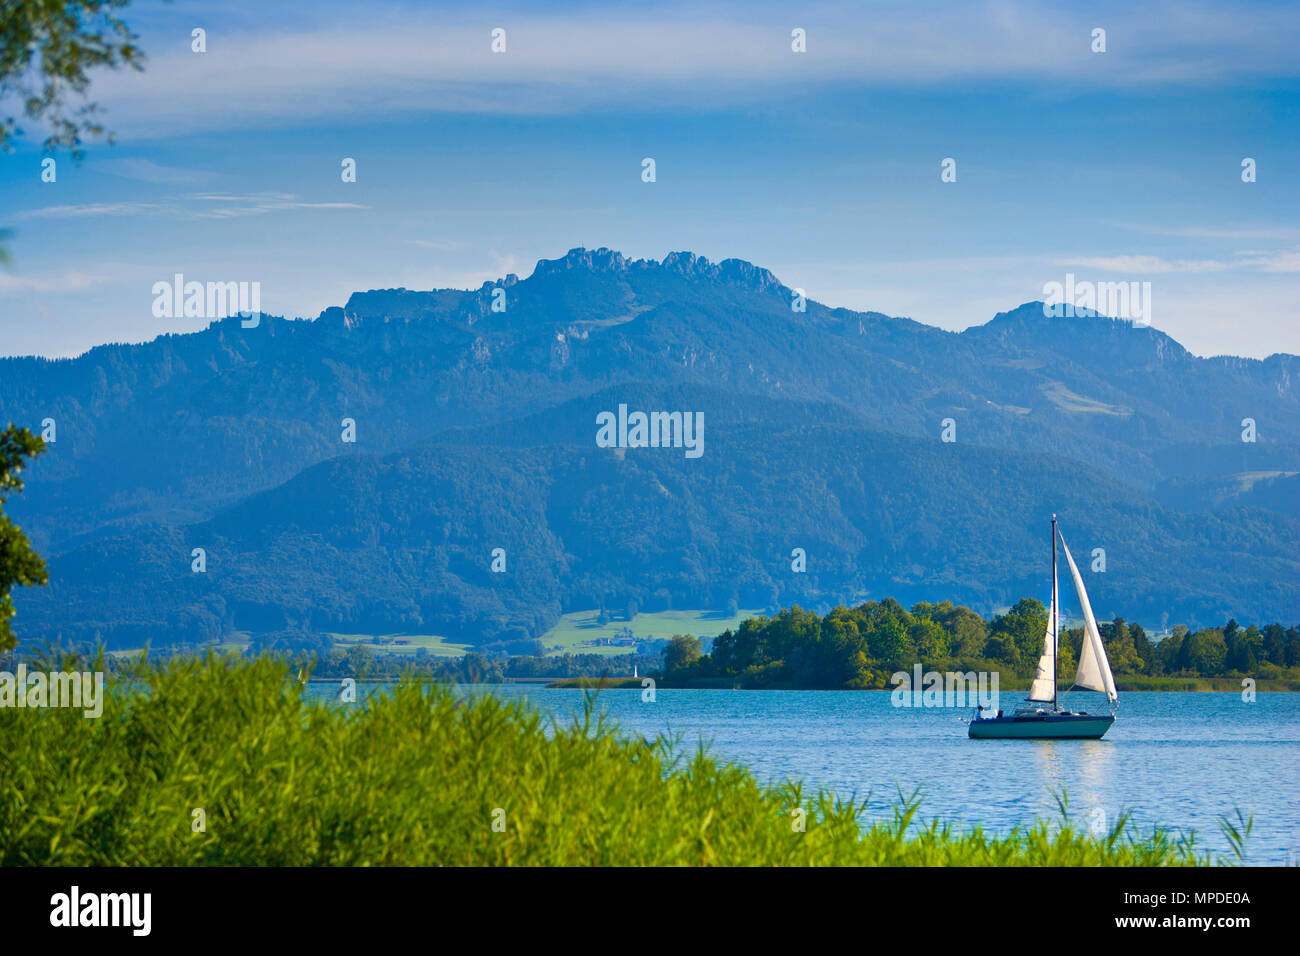 Lake Chiemsee with sailboat and mountain Kampenwand in the background, Bavaria, Germany, Europe Stock Photo